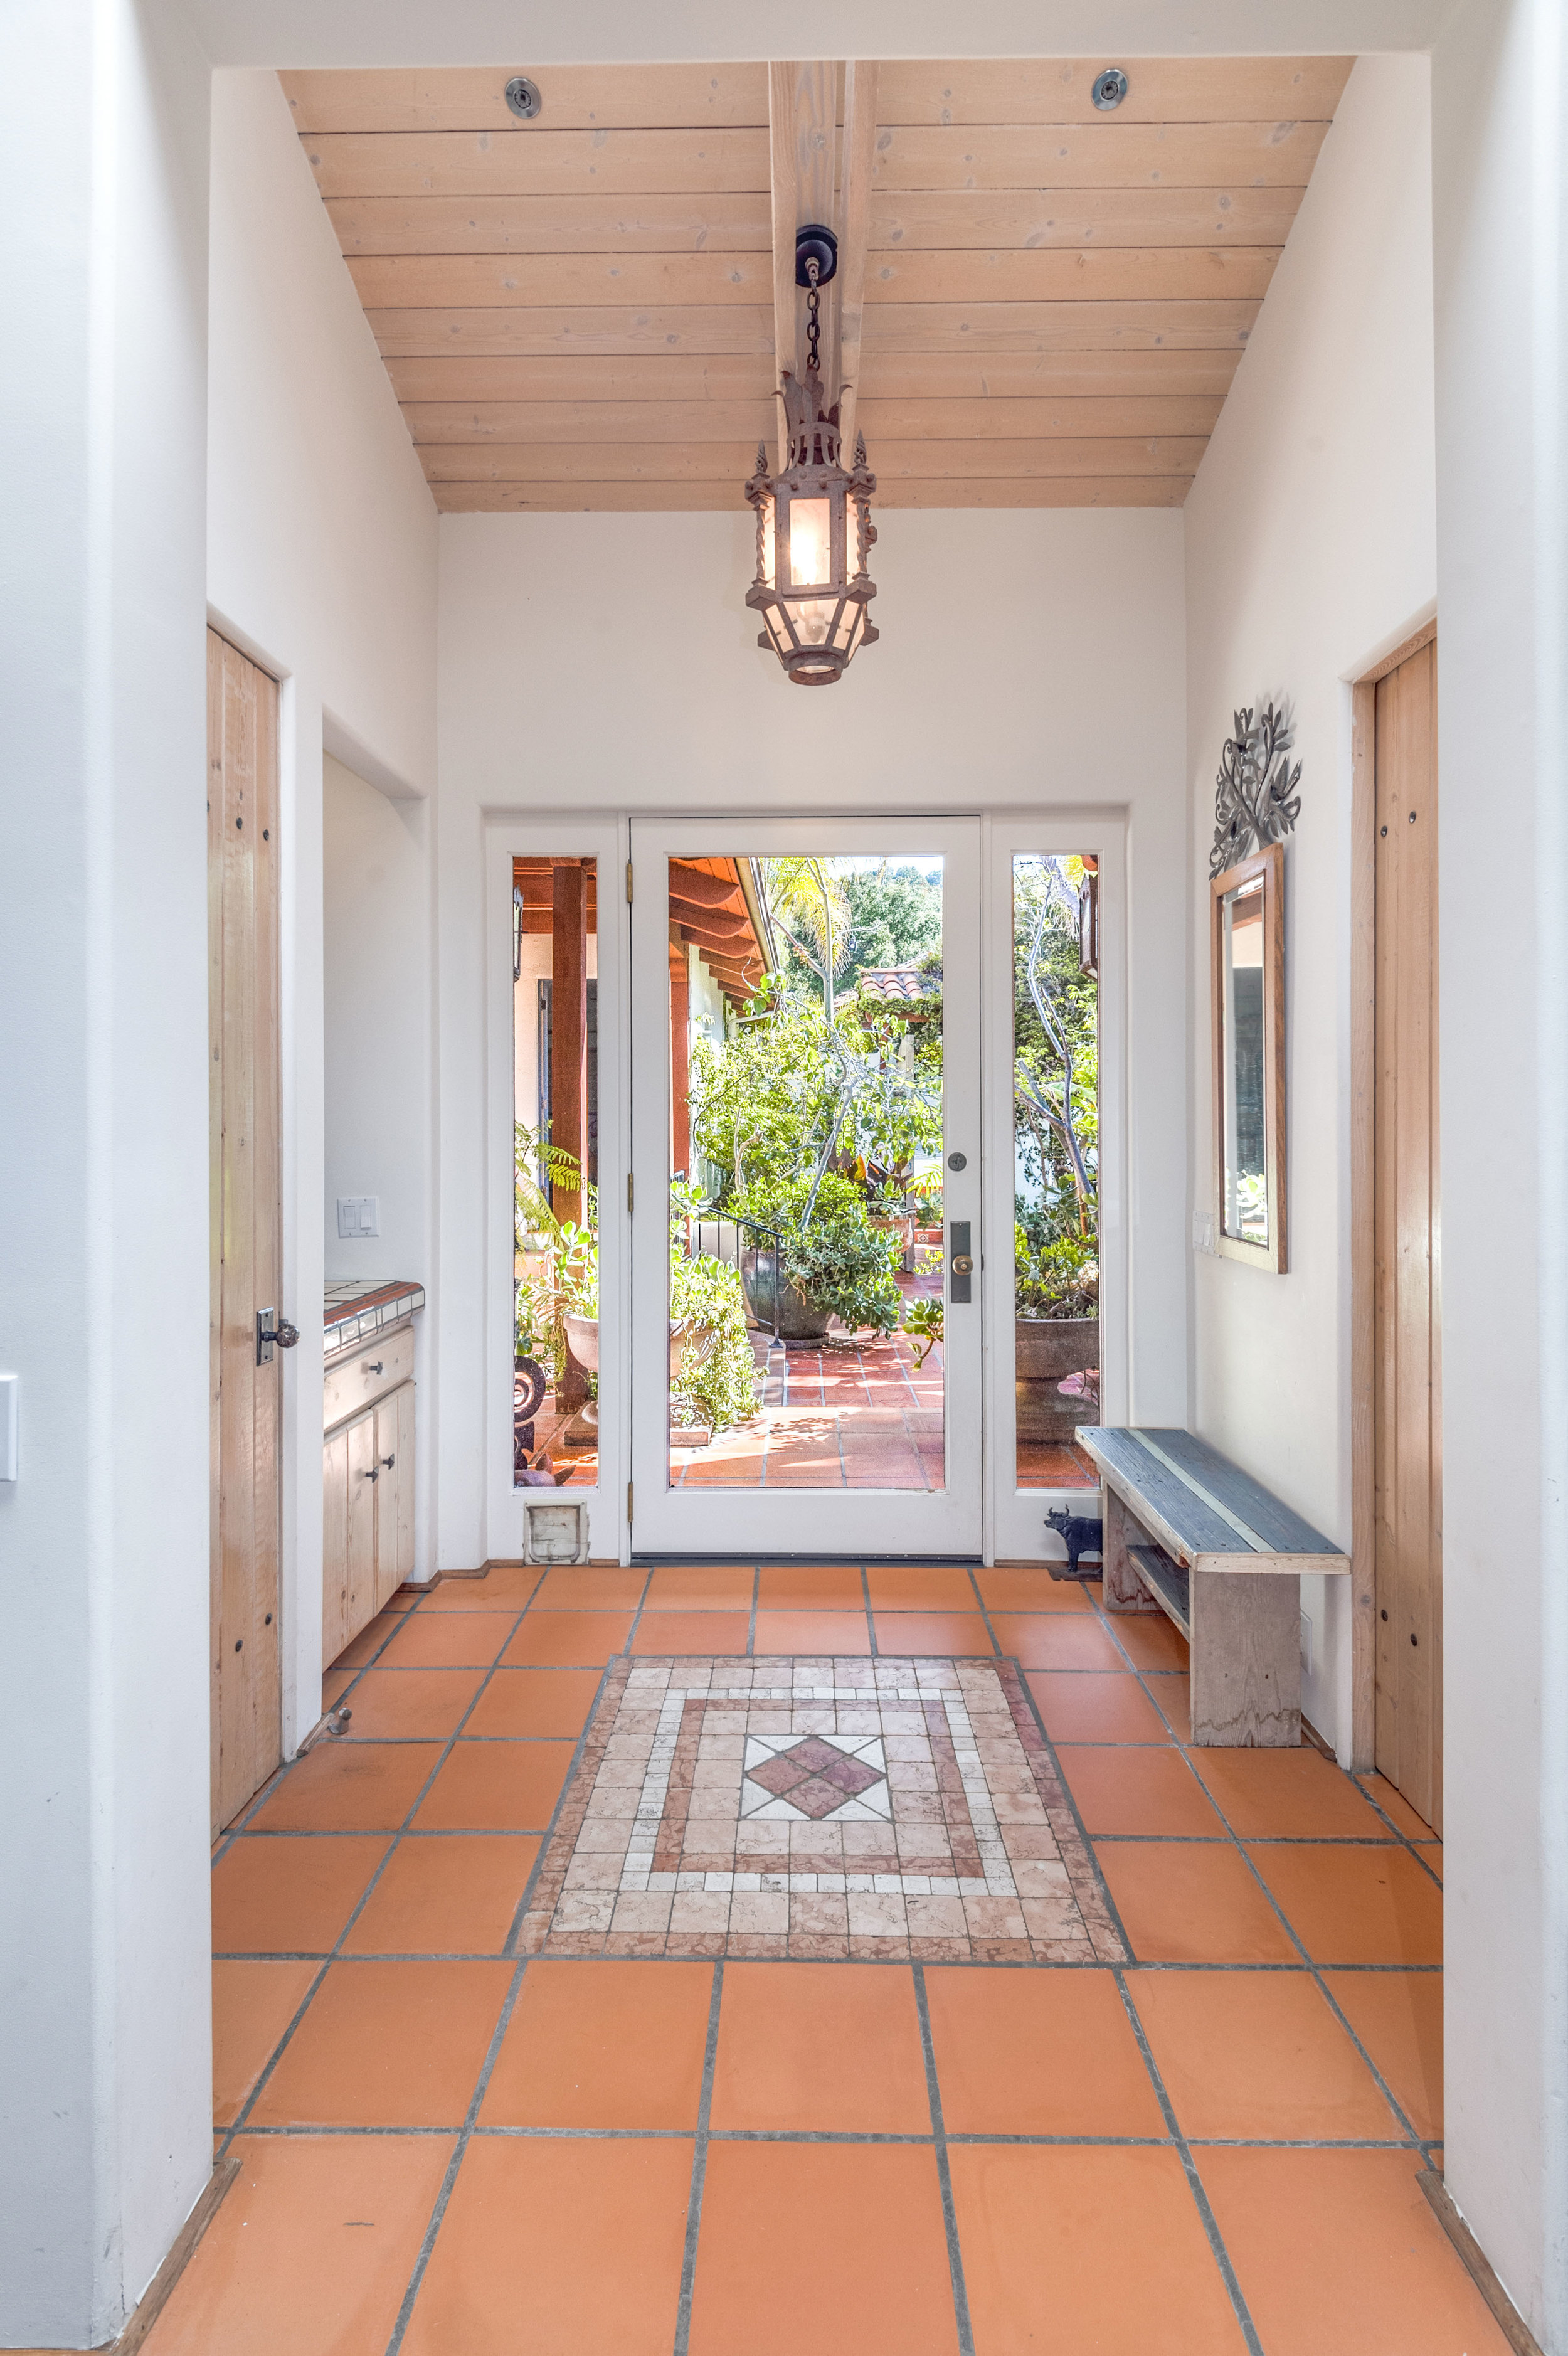 005 Entry 20333 Reigate Road Topanga For Sale Lease The Malibu Life Team Luxury Real Estate.jpg